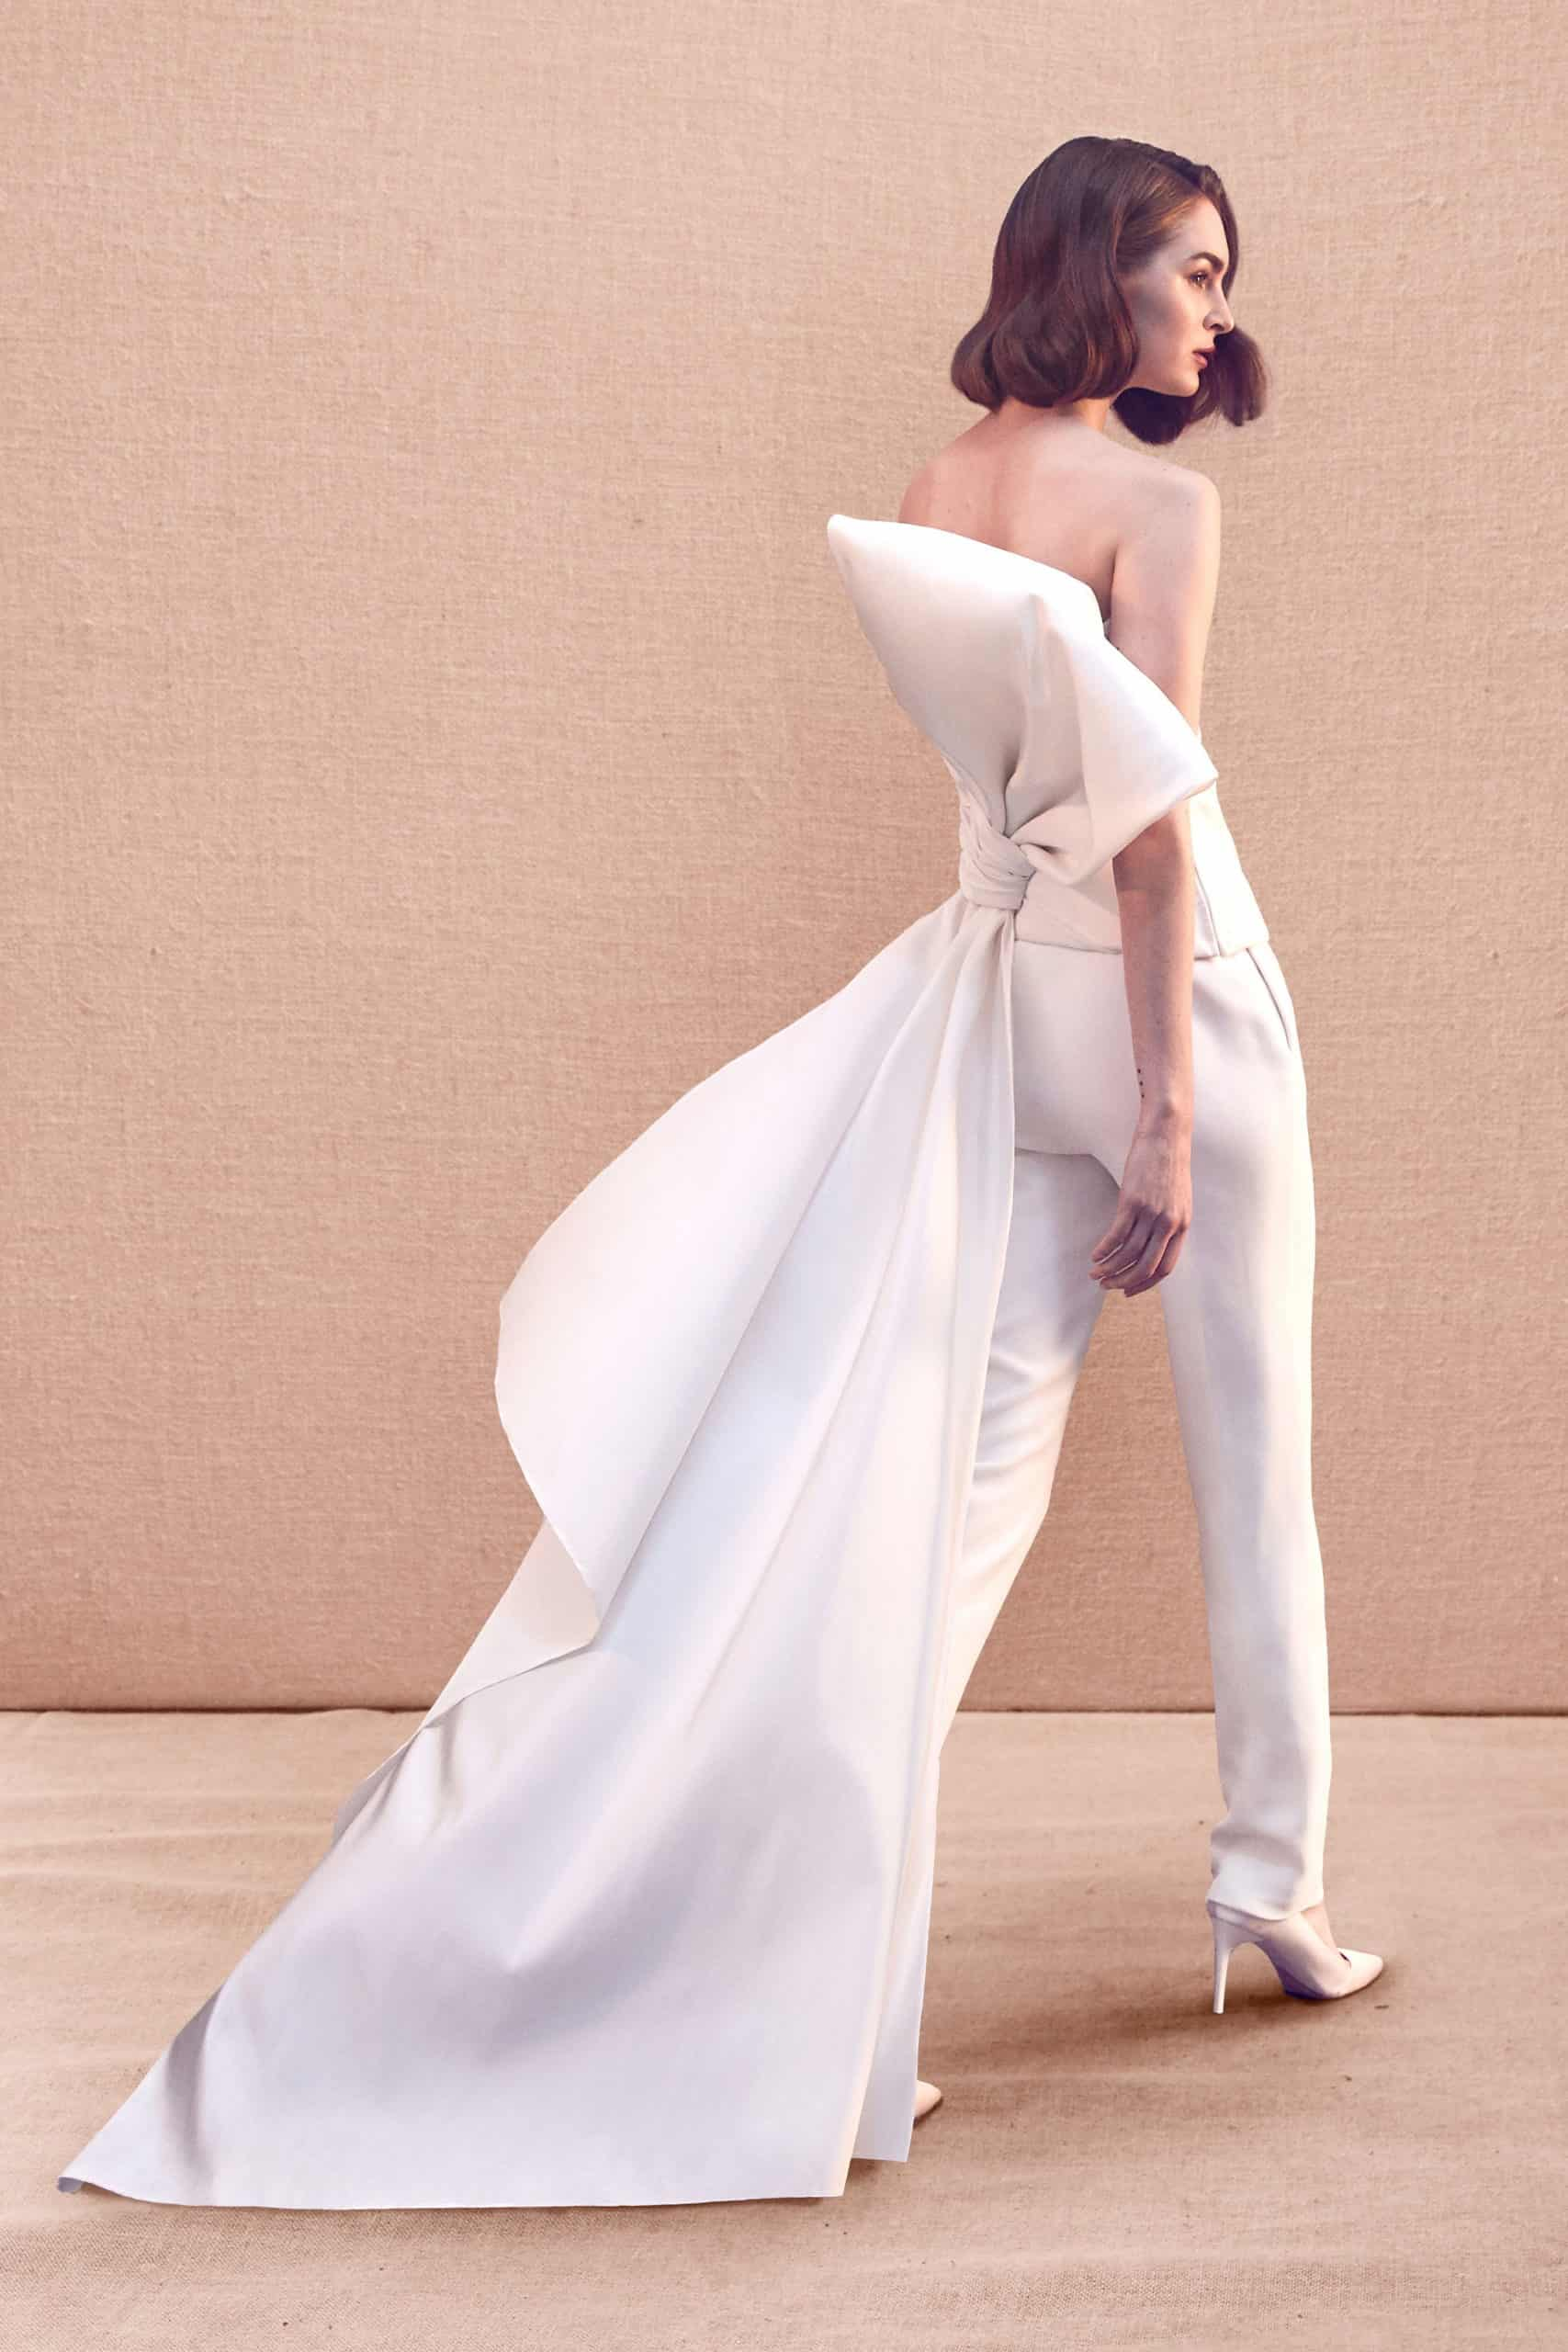 strapless wedding jumpsuit with back huge bow with a tail by Oscar de la Renta